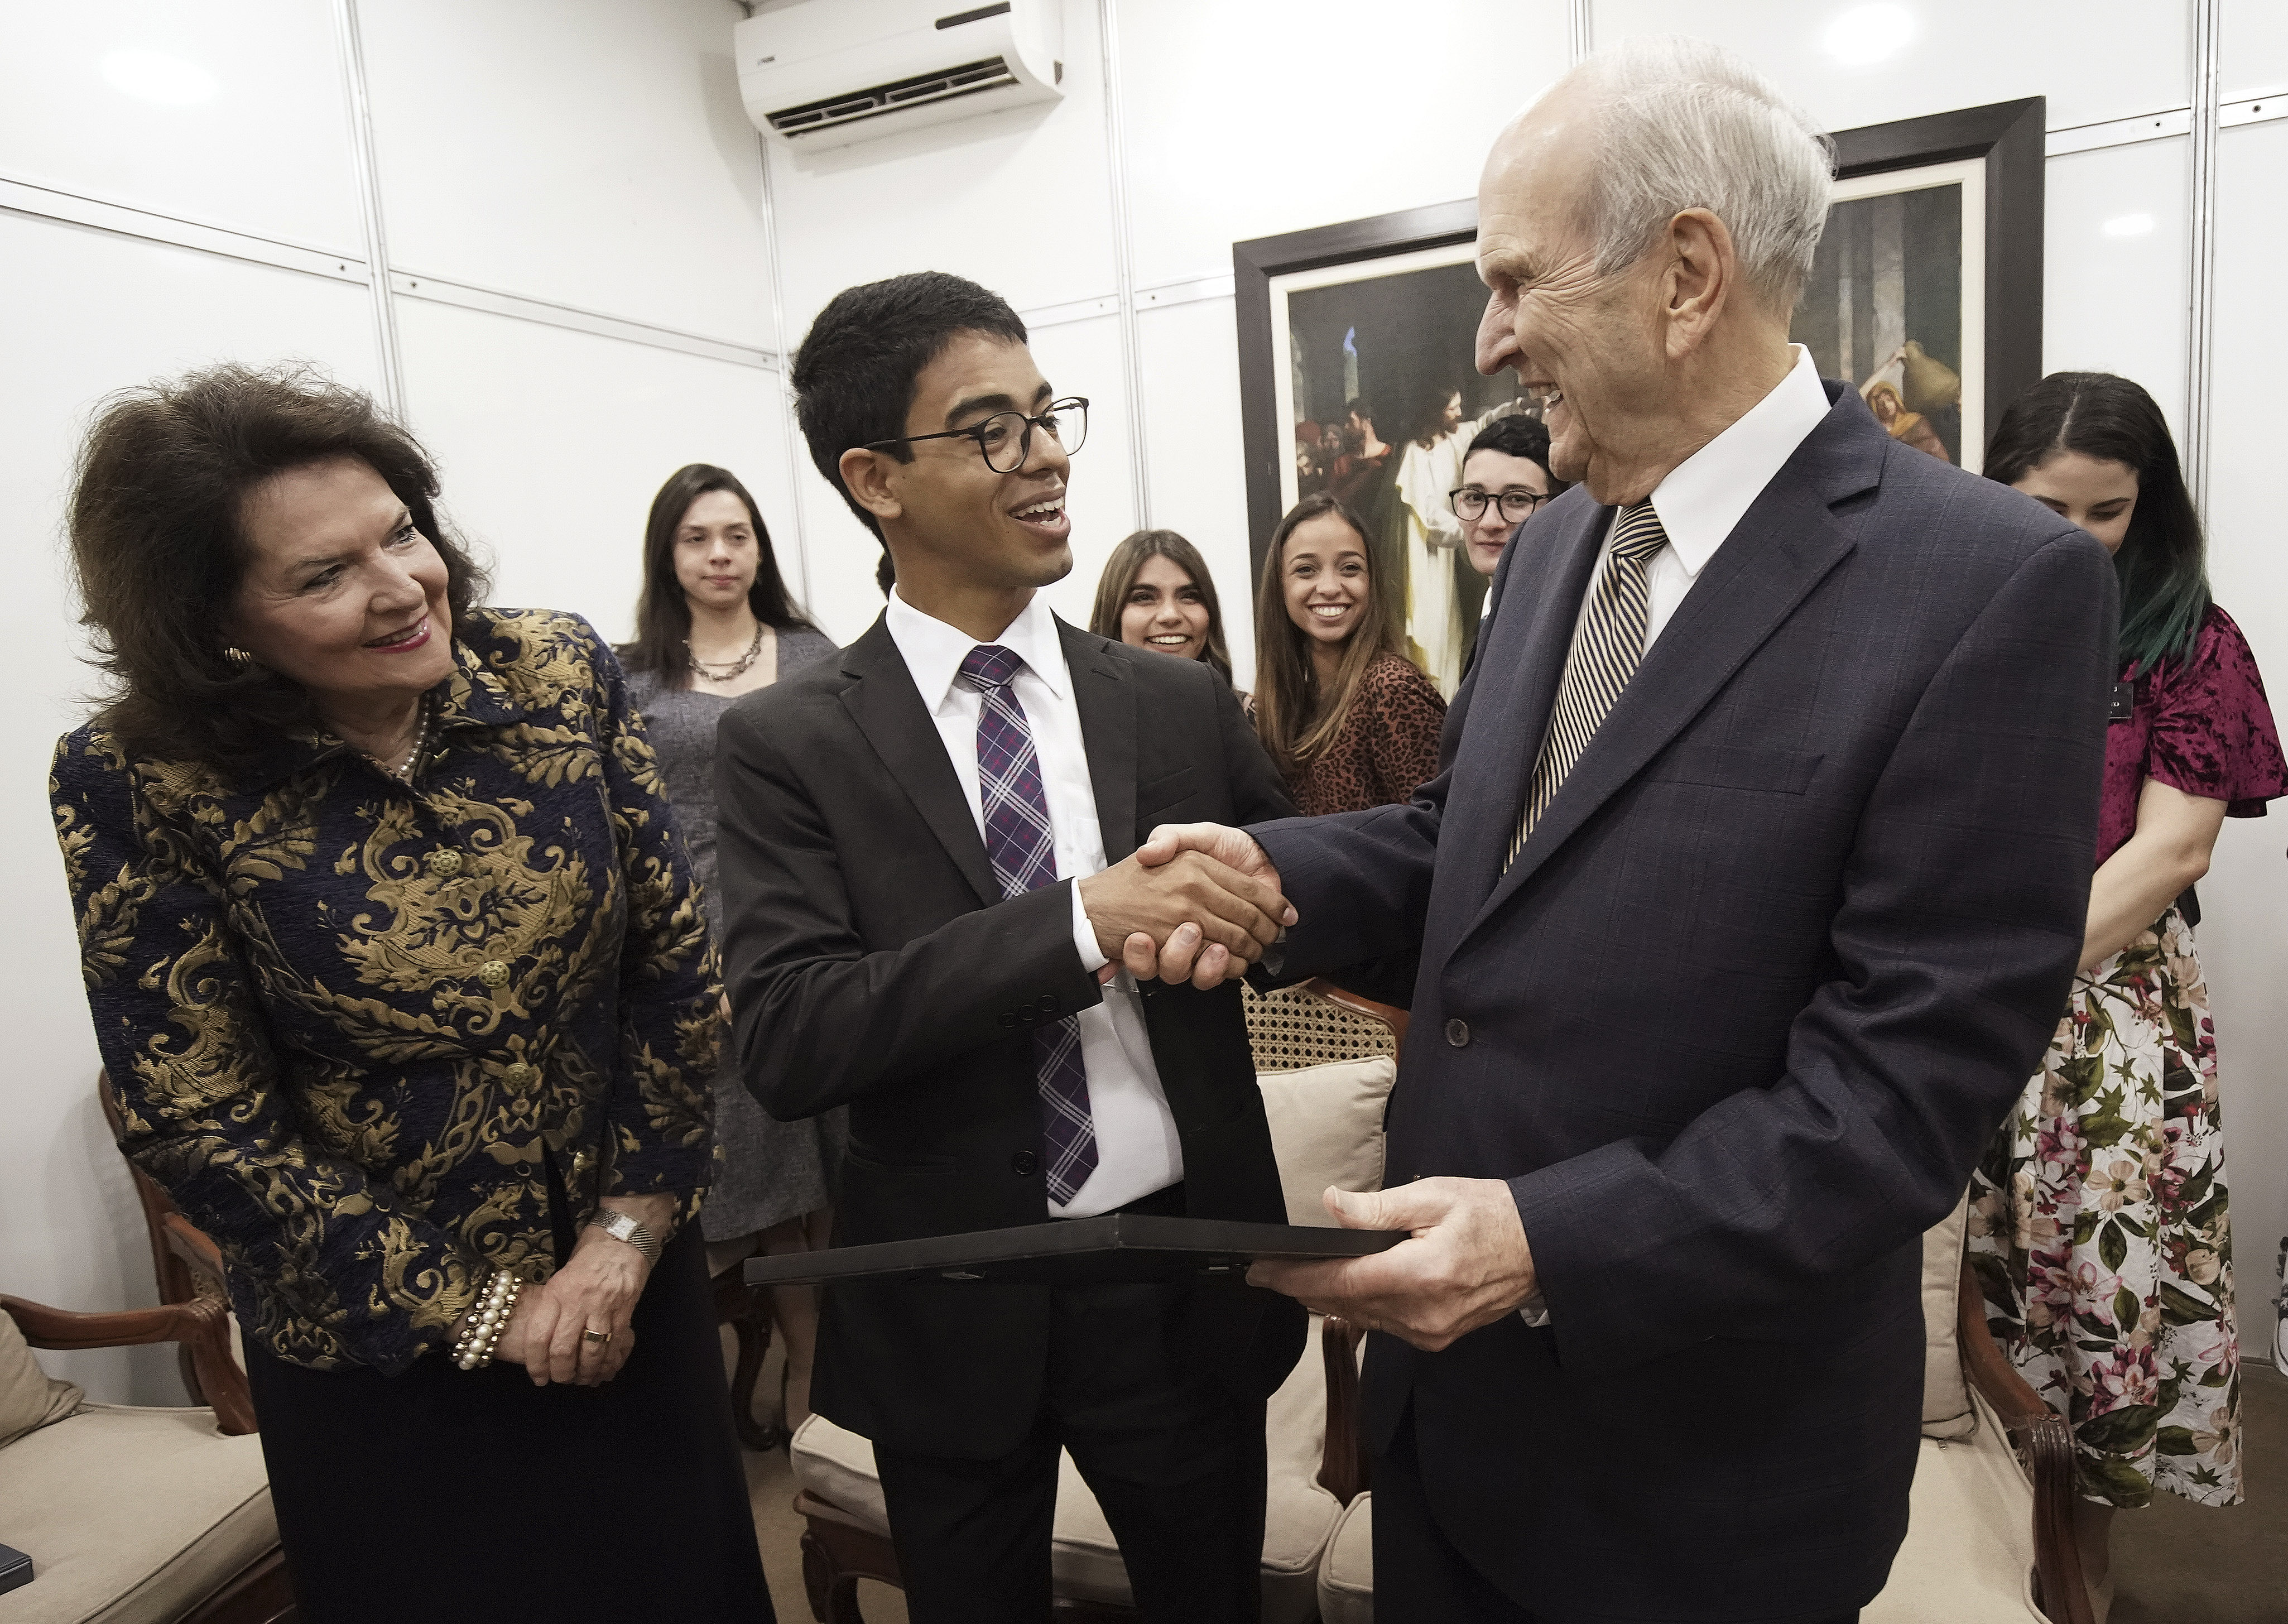 President Russell M. Nelson of The Church of Jesus Christ of Latter-day Saints and his wife, Sister Wendy Nelson, are given a drawing by Wesley Silva in Sao Paulo, Brazil, on Sunday, Sept. 1, 2019.